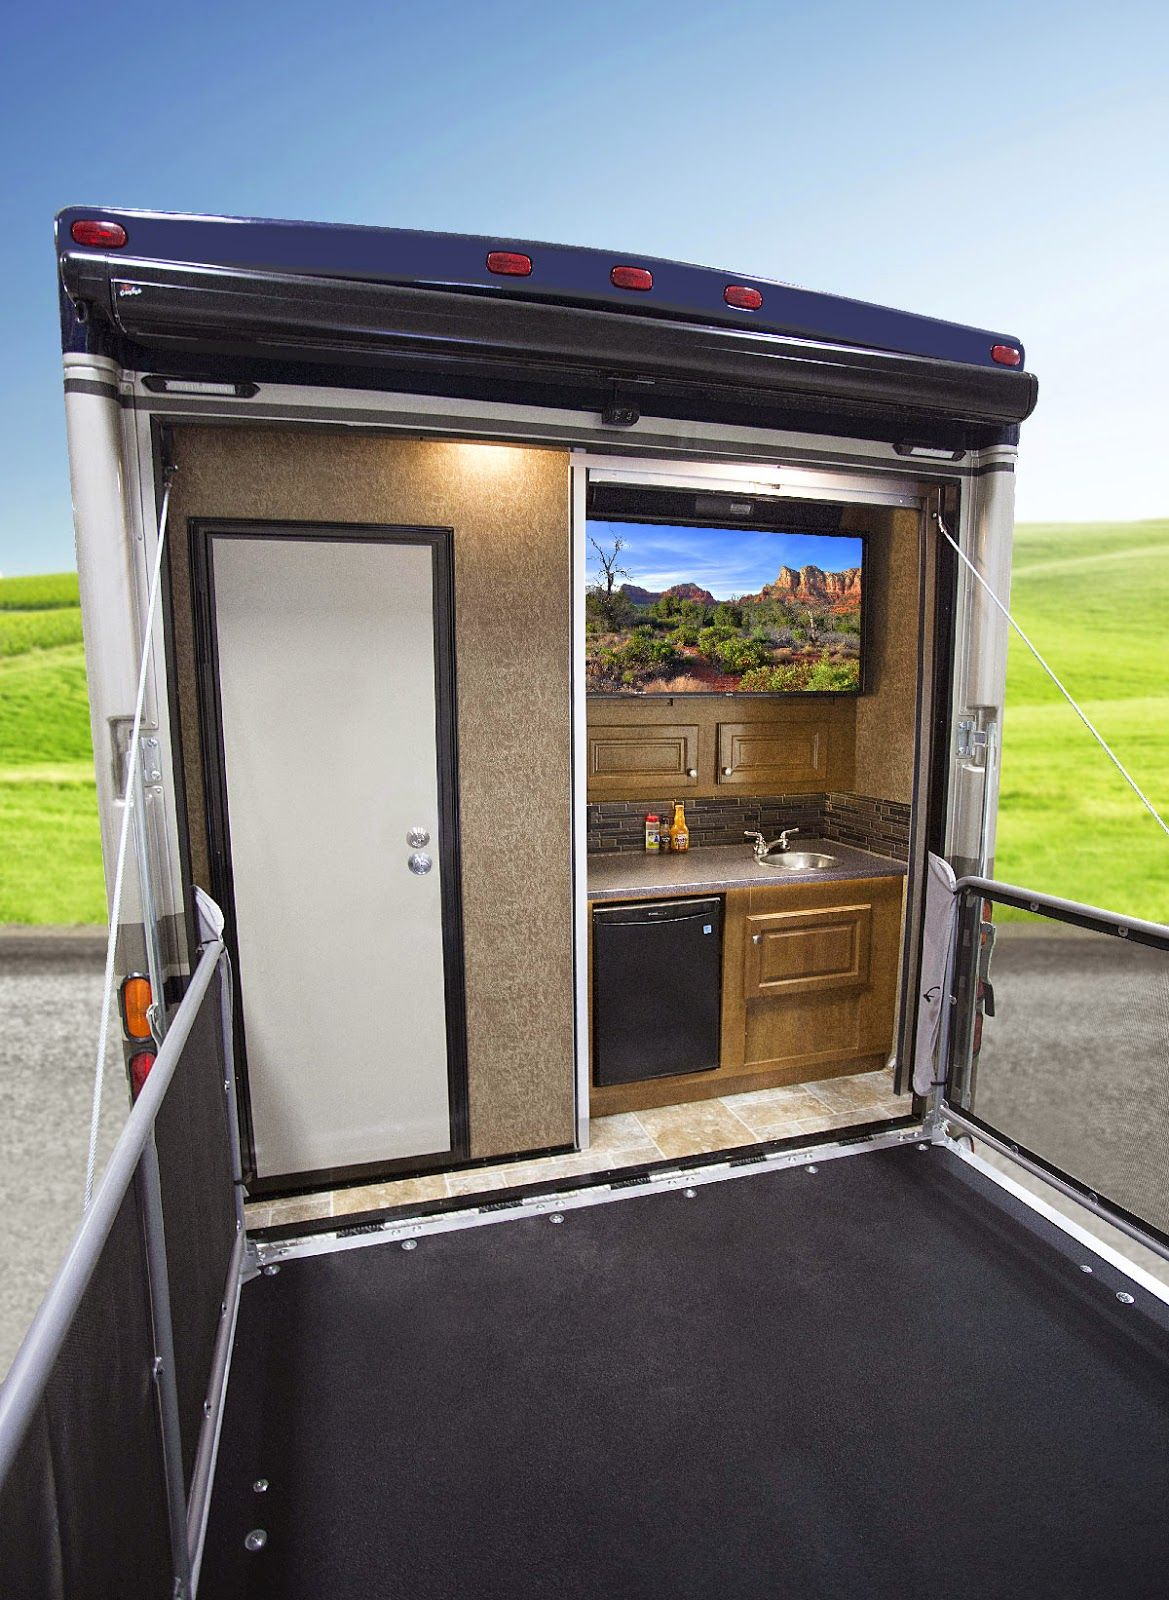 Rv Trader Bc >> Outlaw Toy Haulers from Thor Motor Coach Continue to Impact RV Market - RV Trader Insider- The ...